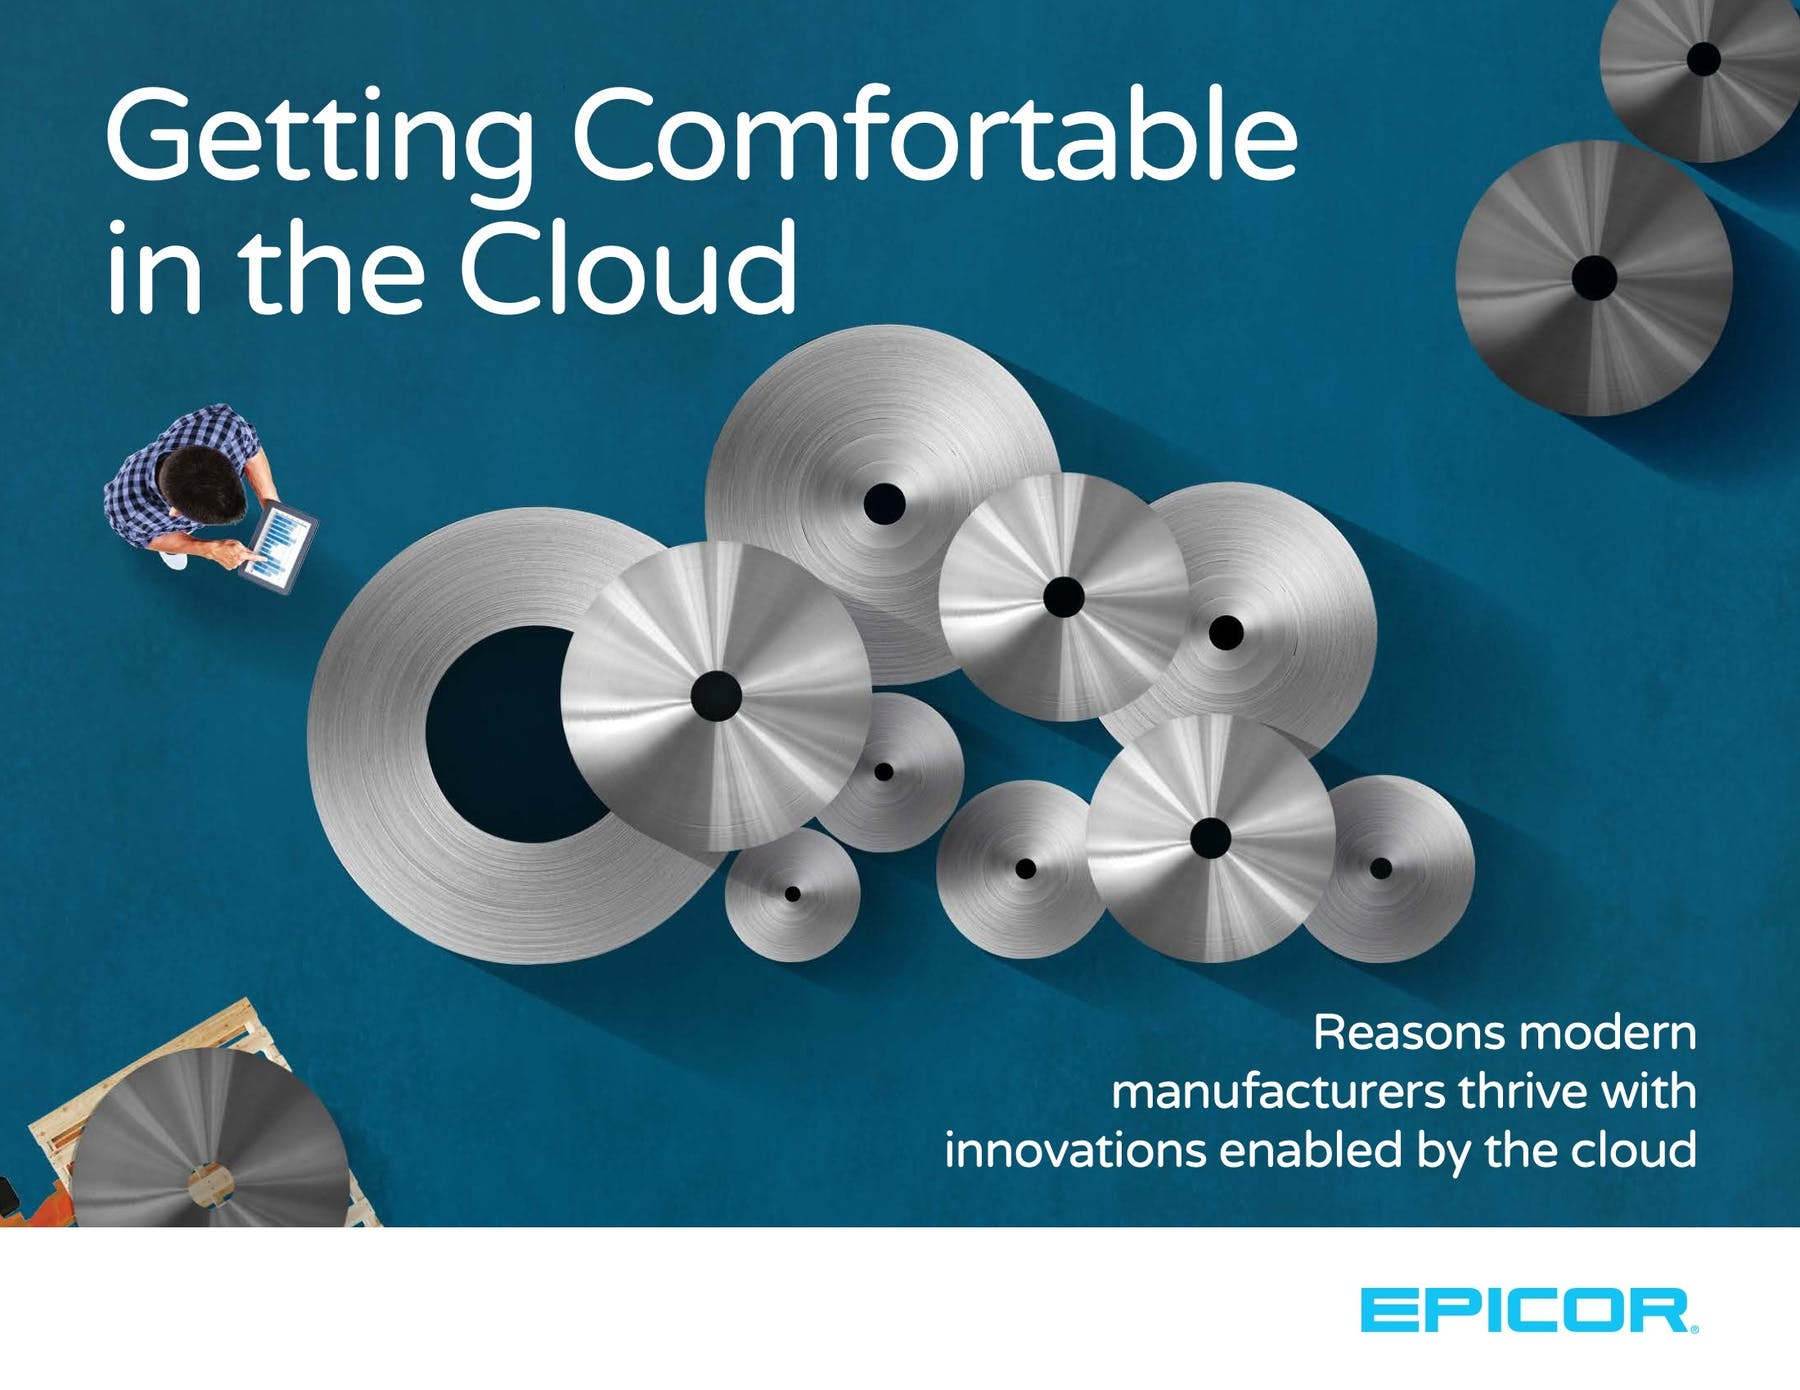 Epicor ERP White Paper - Getting Comfortable in the Cloud